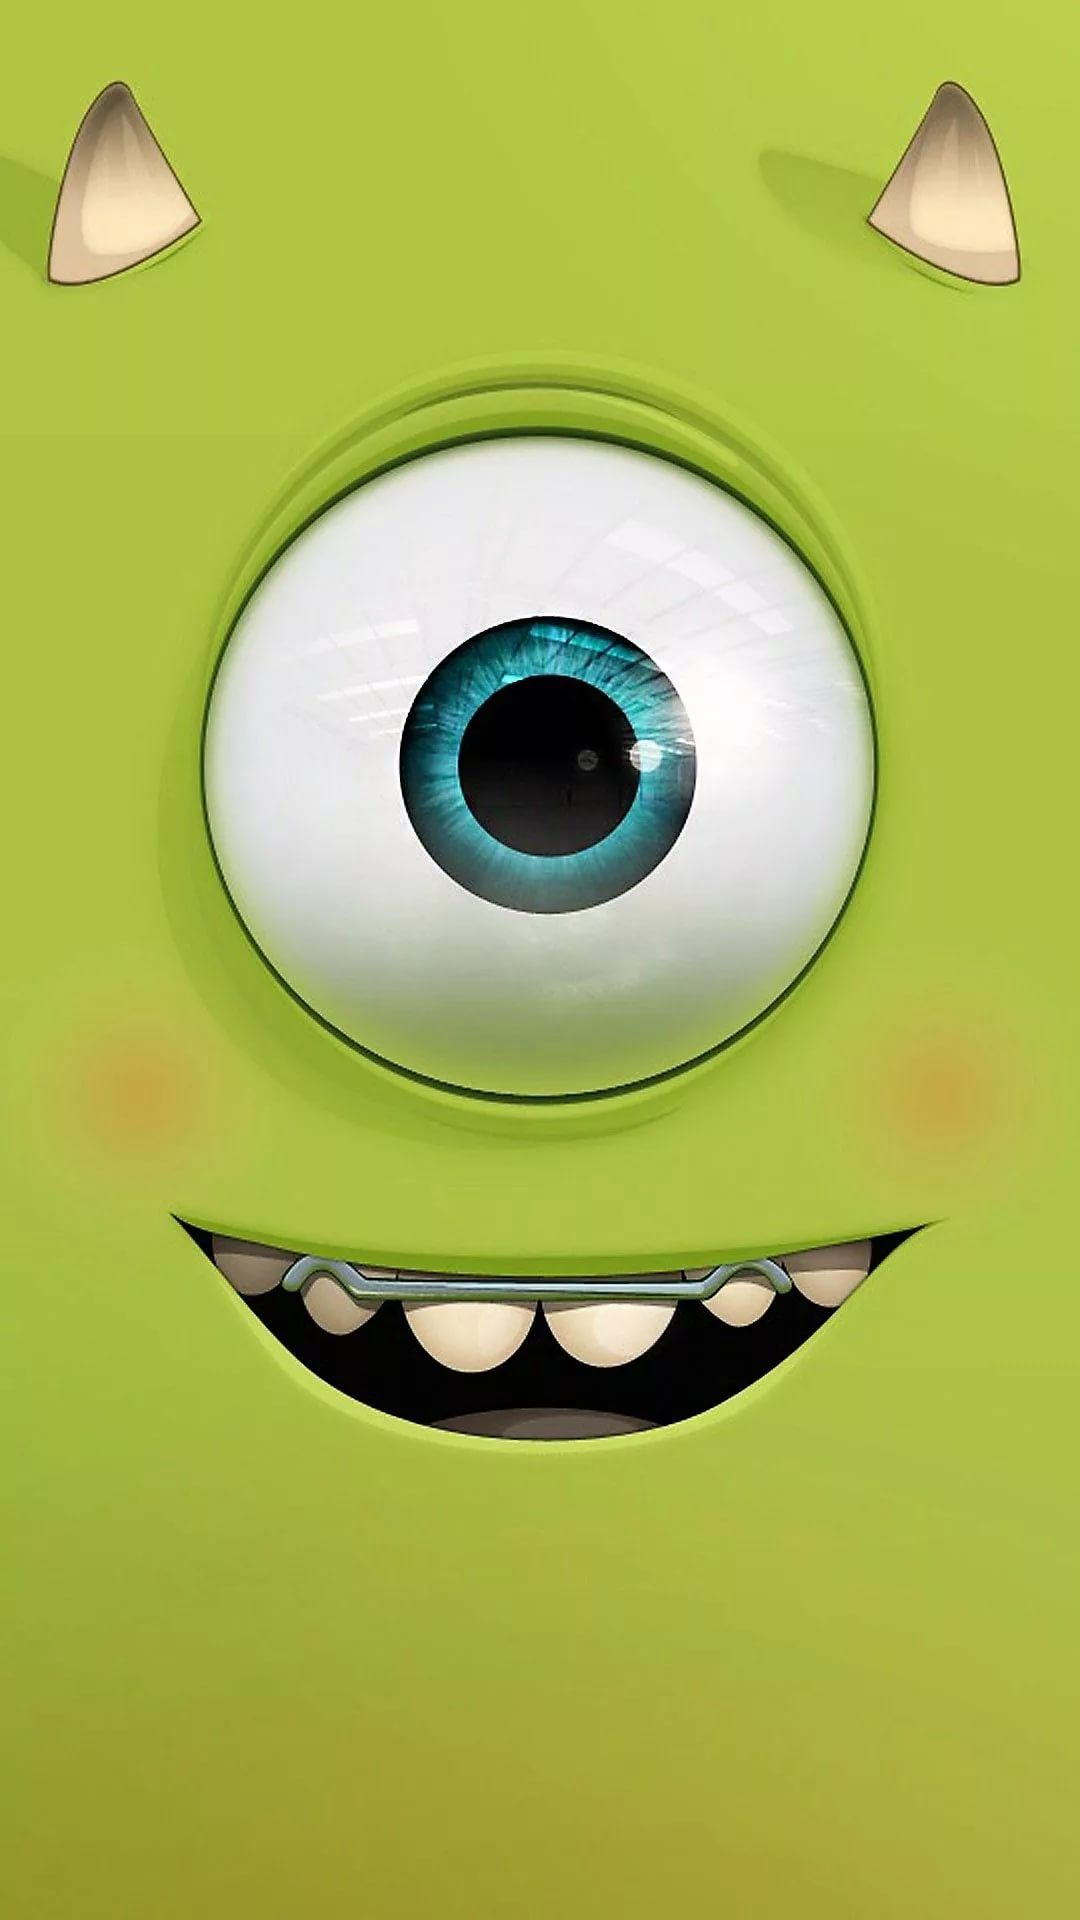 Monster Background wallpaper for iPhone